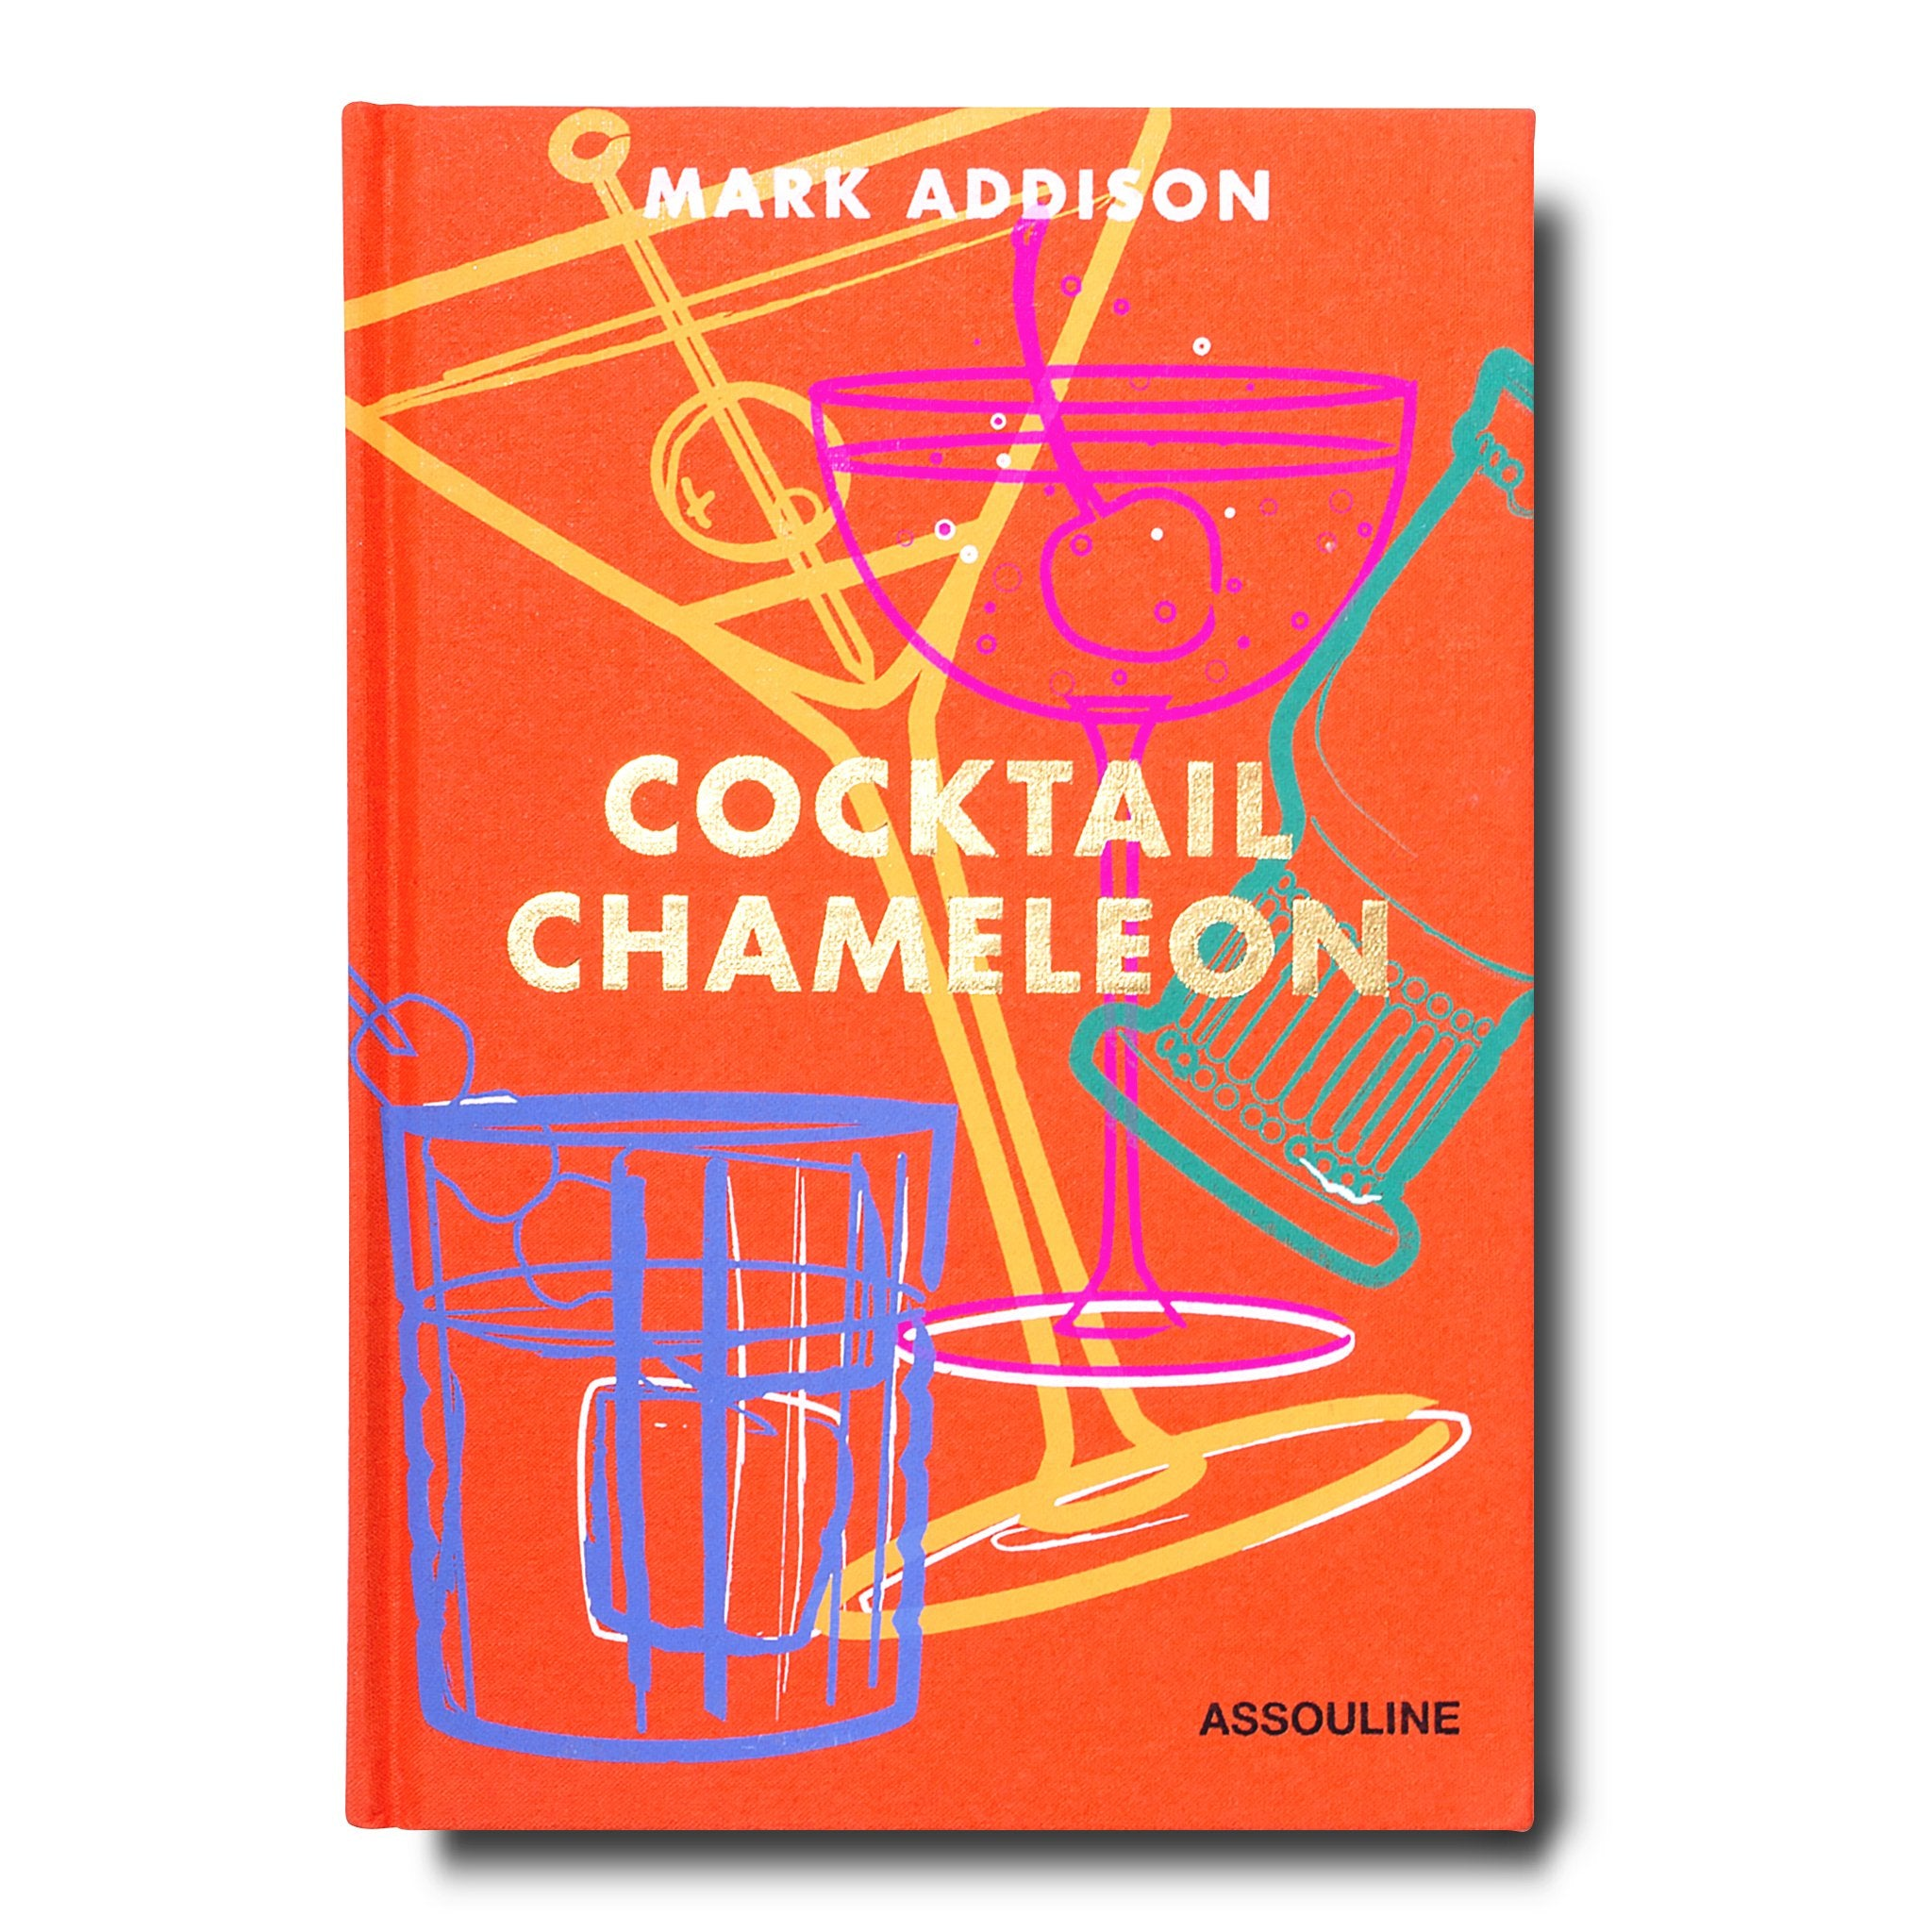 Cocktail Chameleon - Assouline